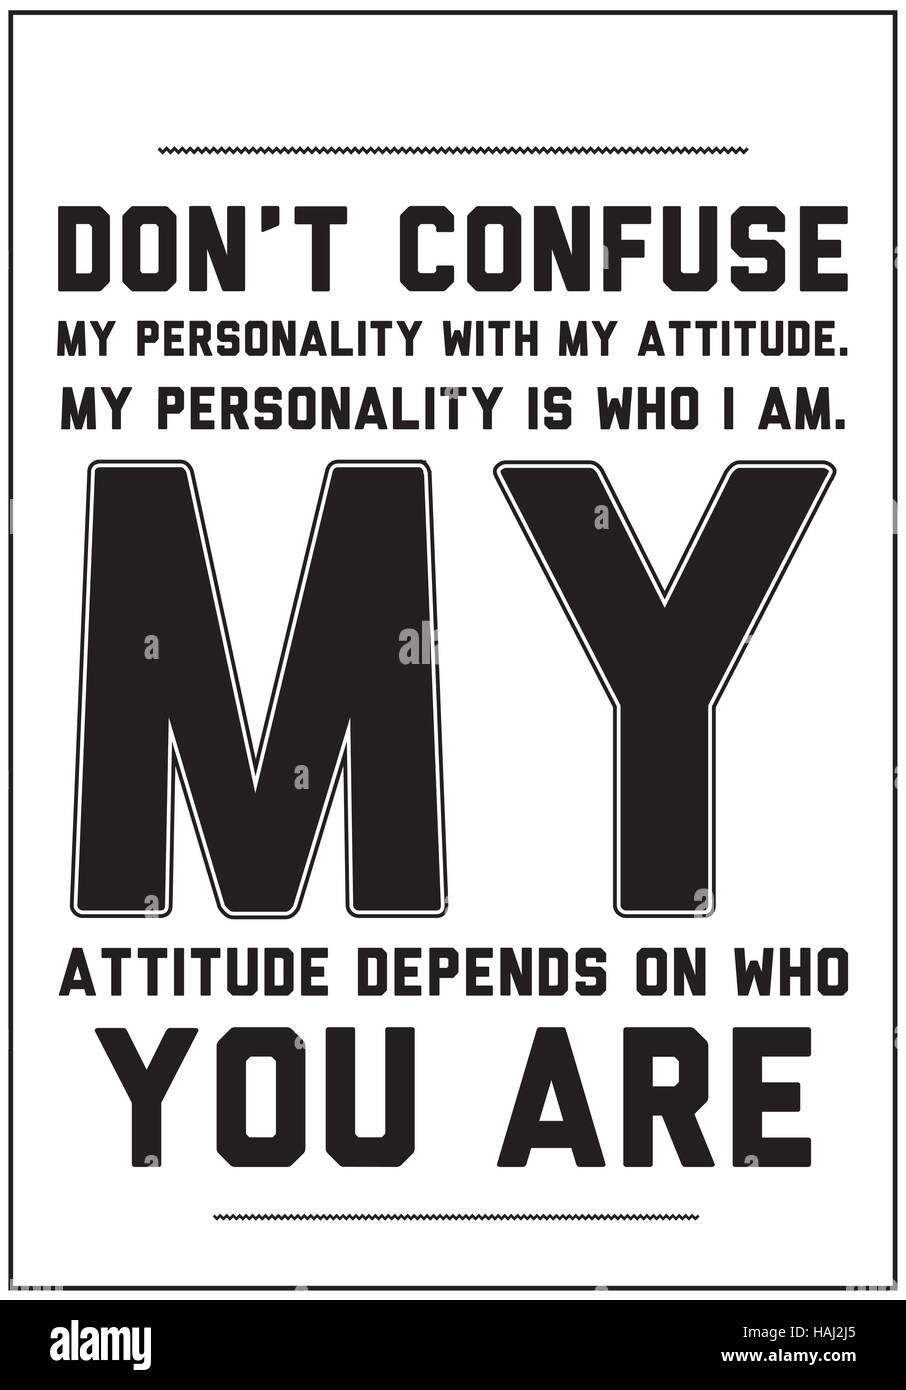 Don't confuse my personality with my attitude. My personality is who I am. My attitude depends on who you are - Stock Vector